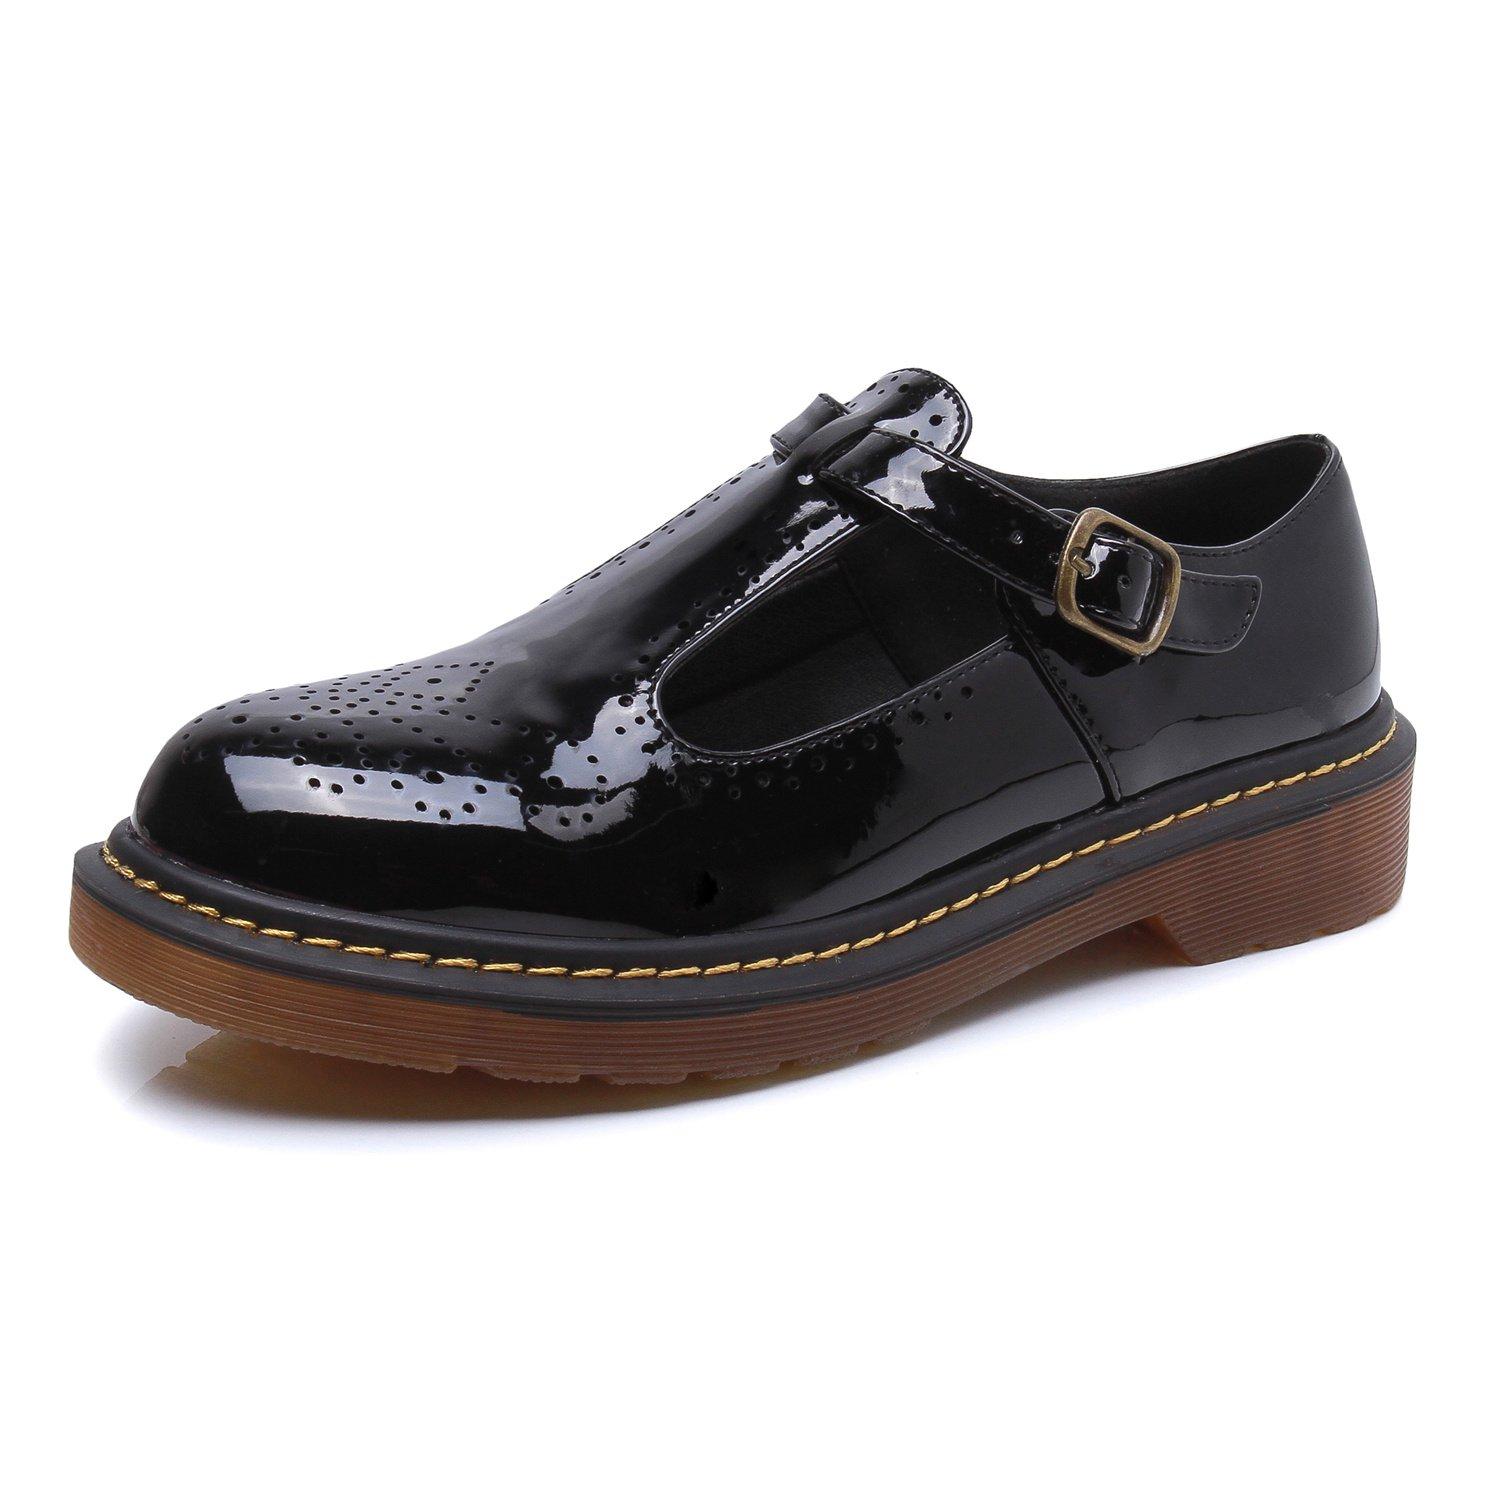 Smilun Girl¡¯s Derby Classic Lace-up Shoes Pantent Leather Flats Pantent Leather Office Business Dress Shoes for Girl Black Size 6 B(M) US